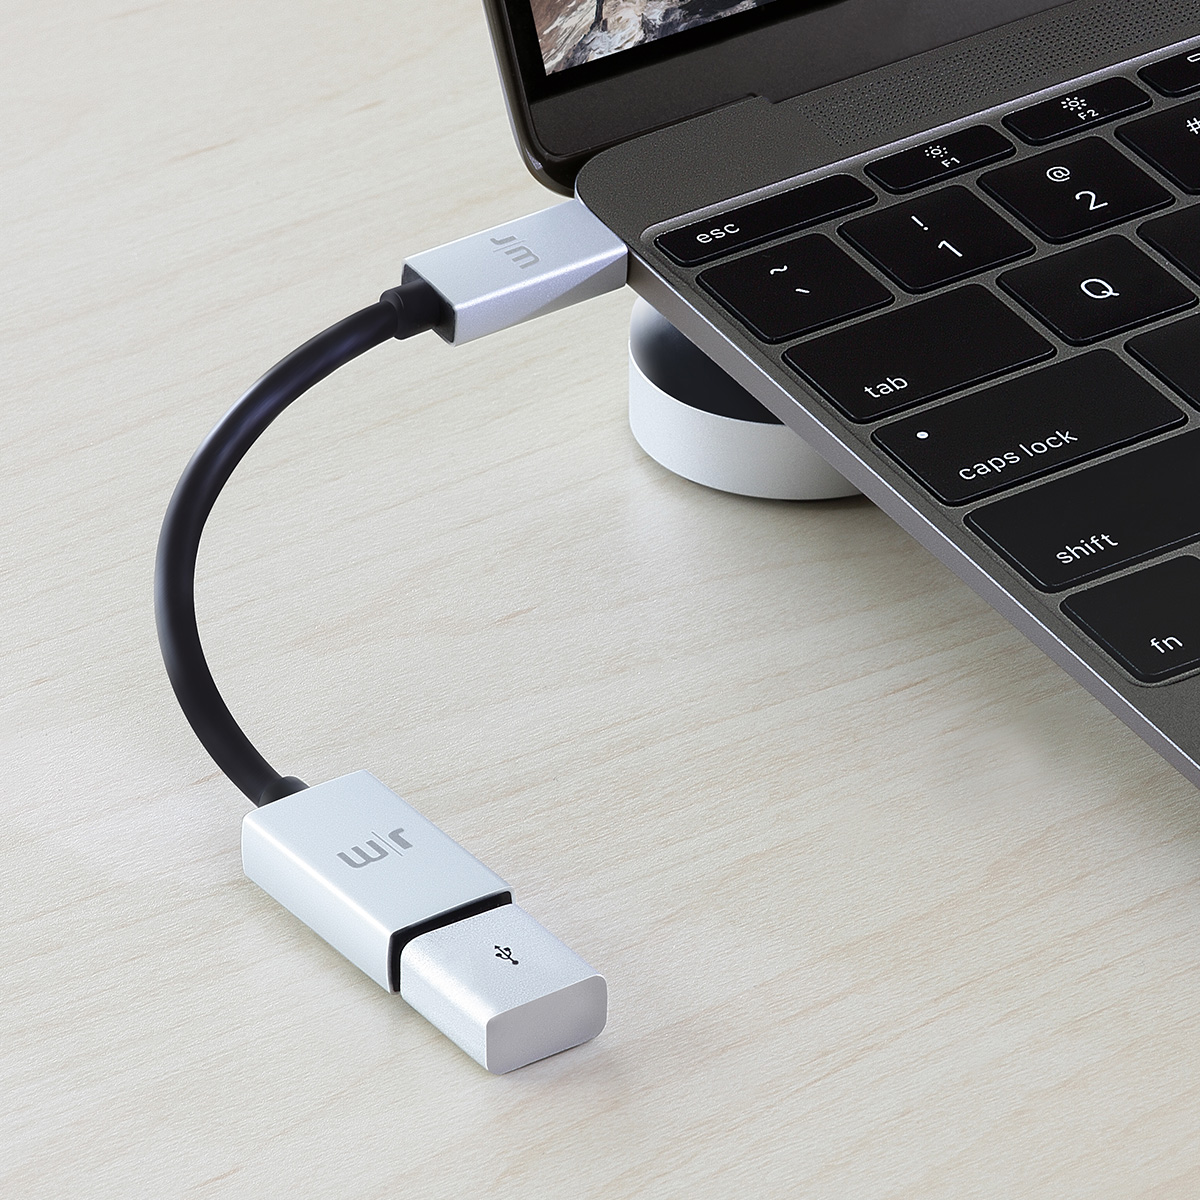 Type-C USB 変換アダプター Just Mobile AluCable USB-C 3.1 to USB Adapter(ジャストモバイル アルケーブル)高速充電 データ転送対応